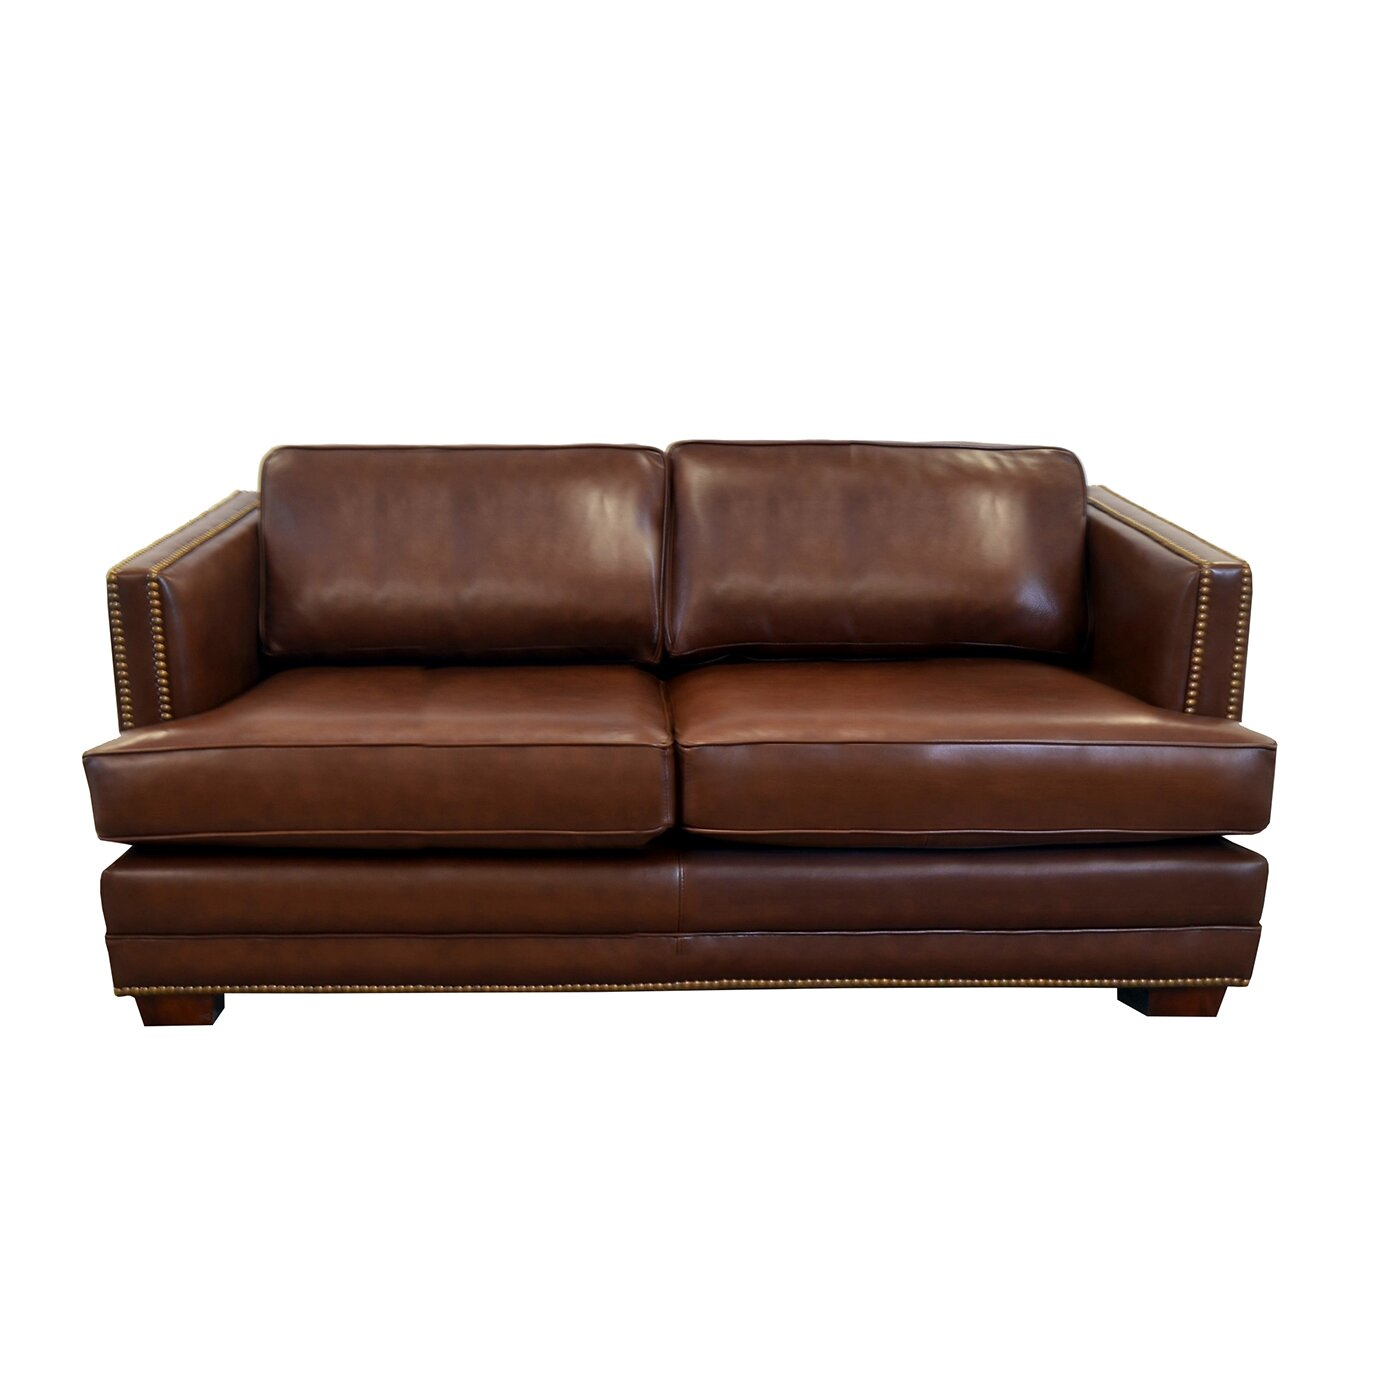 Genuine Leather Sectional Sofa Canada: Westland And Birch Millbury Genuine Top Grain Leather Sofa